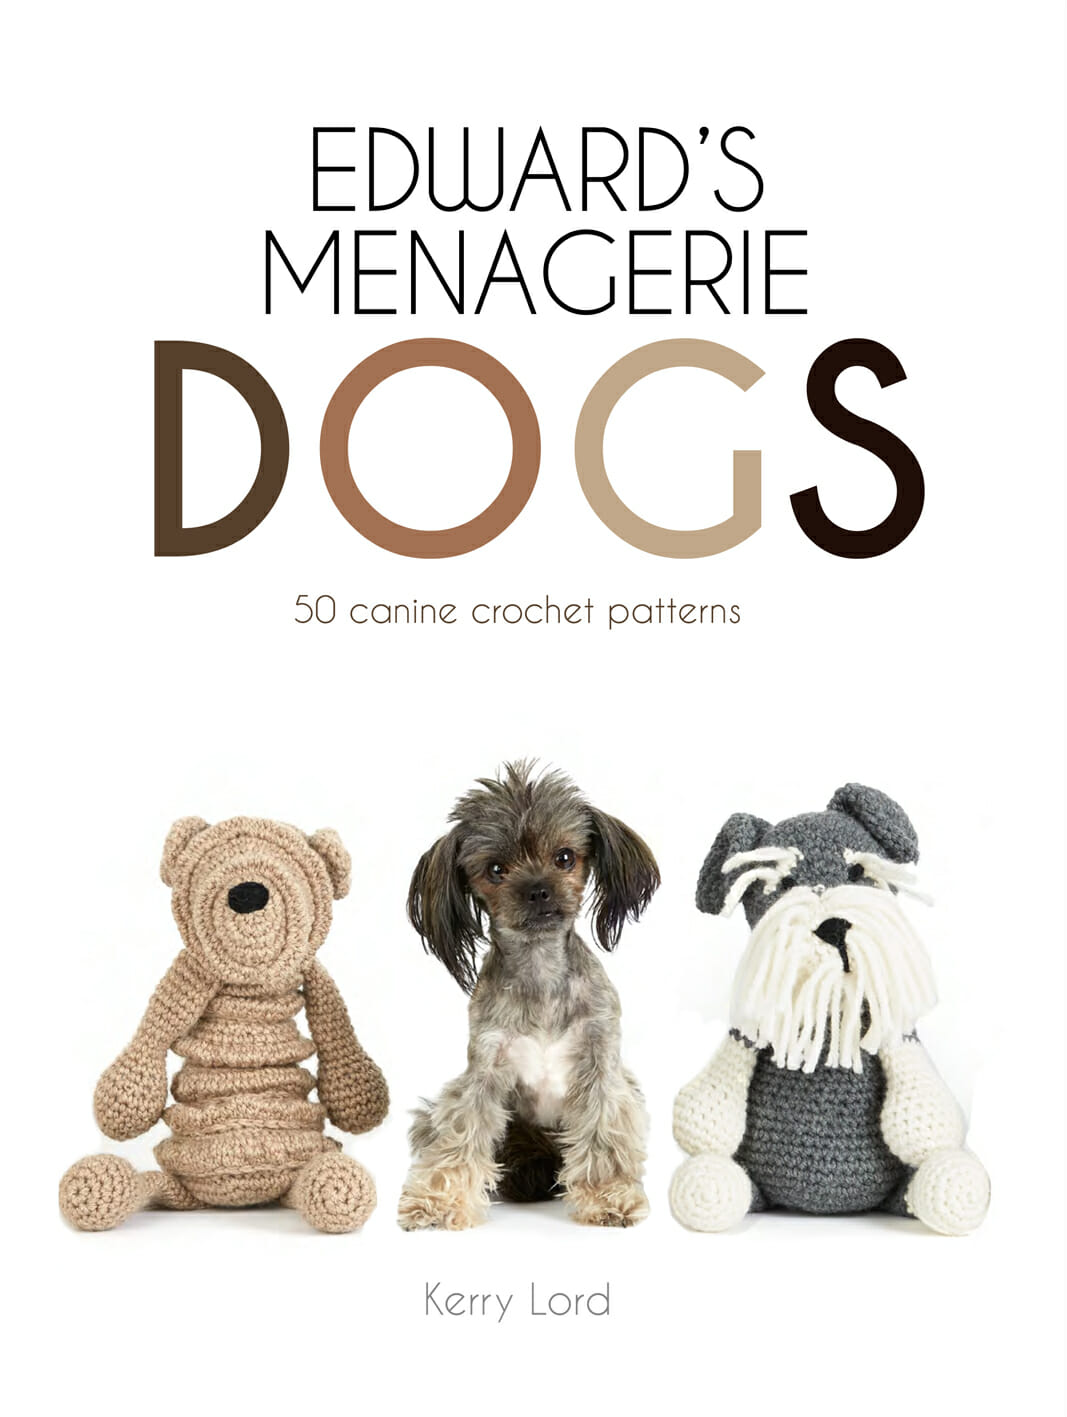 Book Review – Edward's Menagerie Dogs